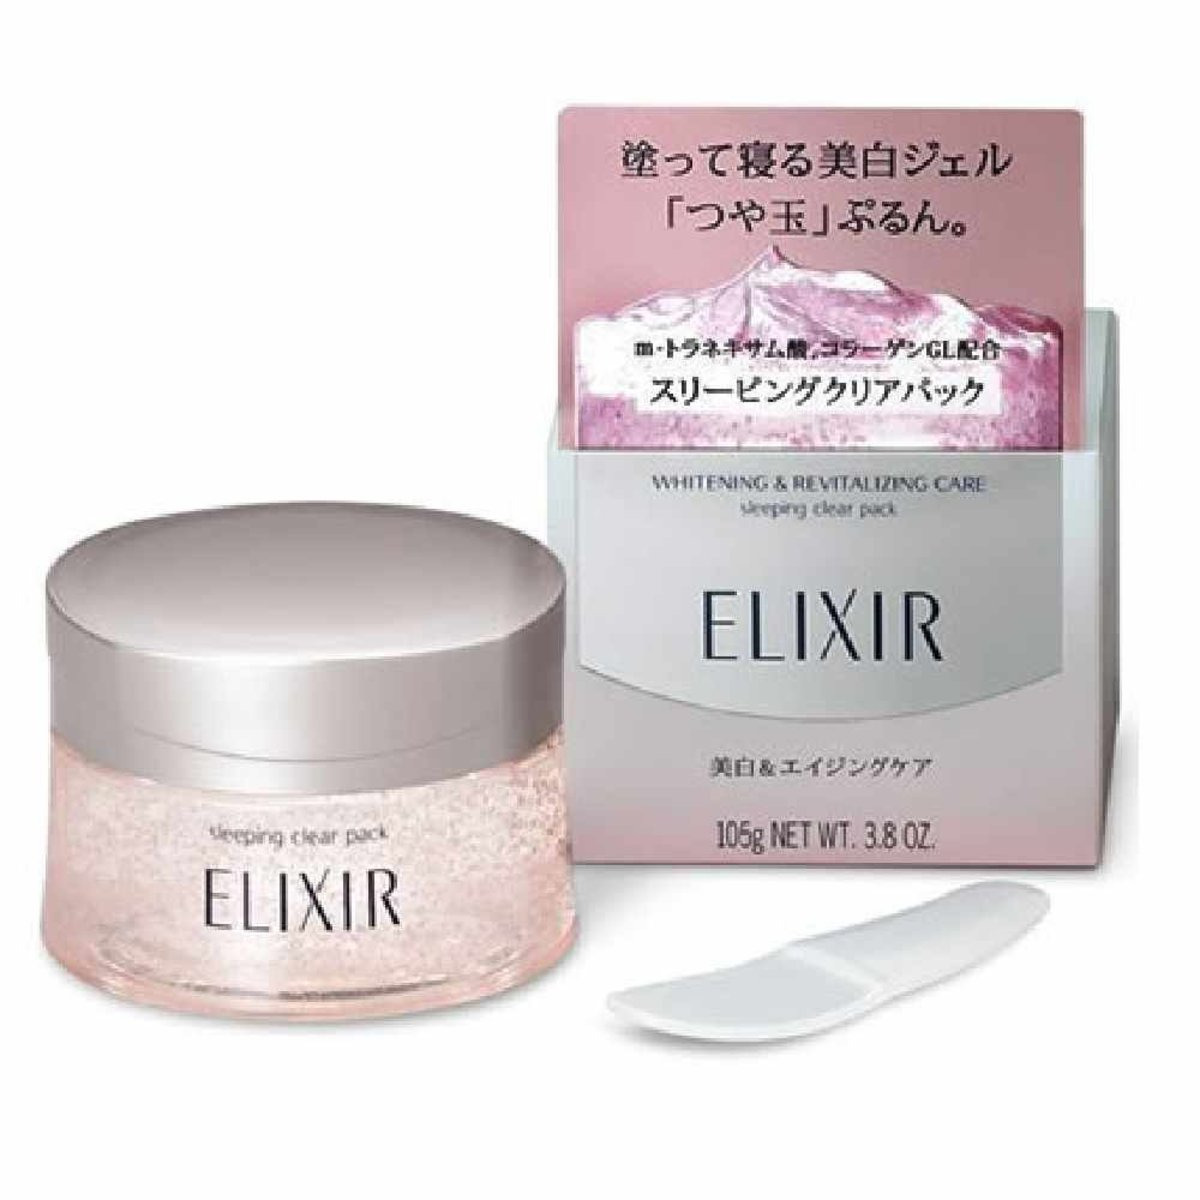 Elixir Whitening and Revitalizing Care Sleeping Clear Pack Elixir 105g [Parallel Import]